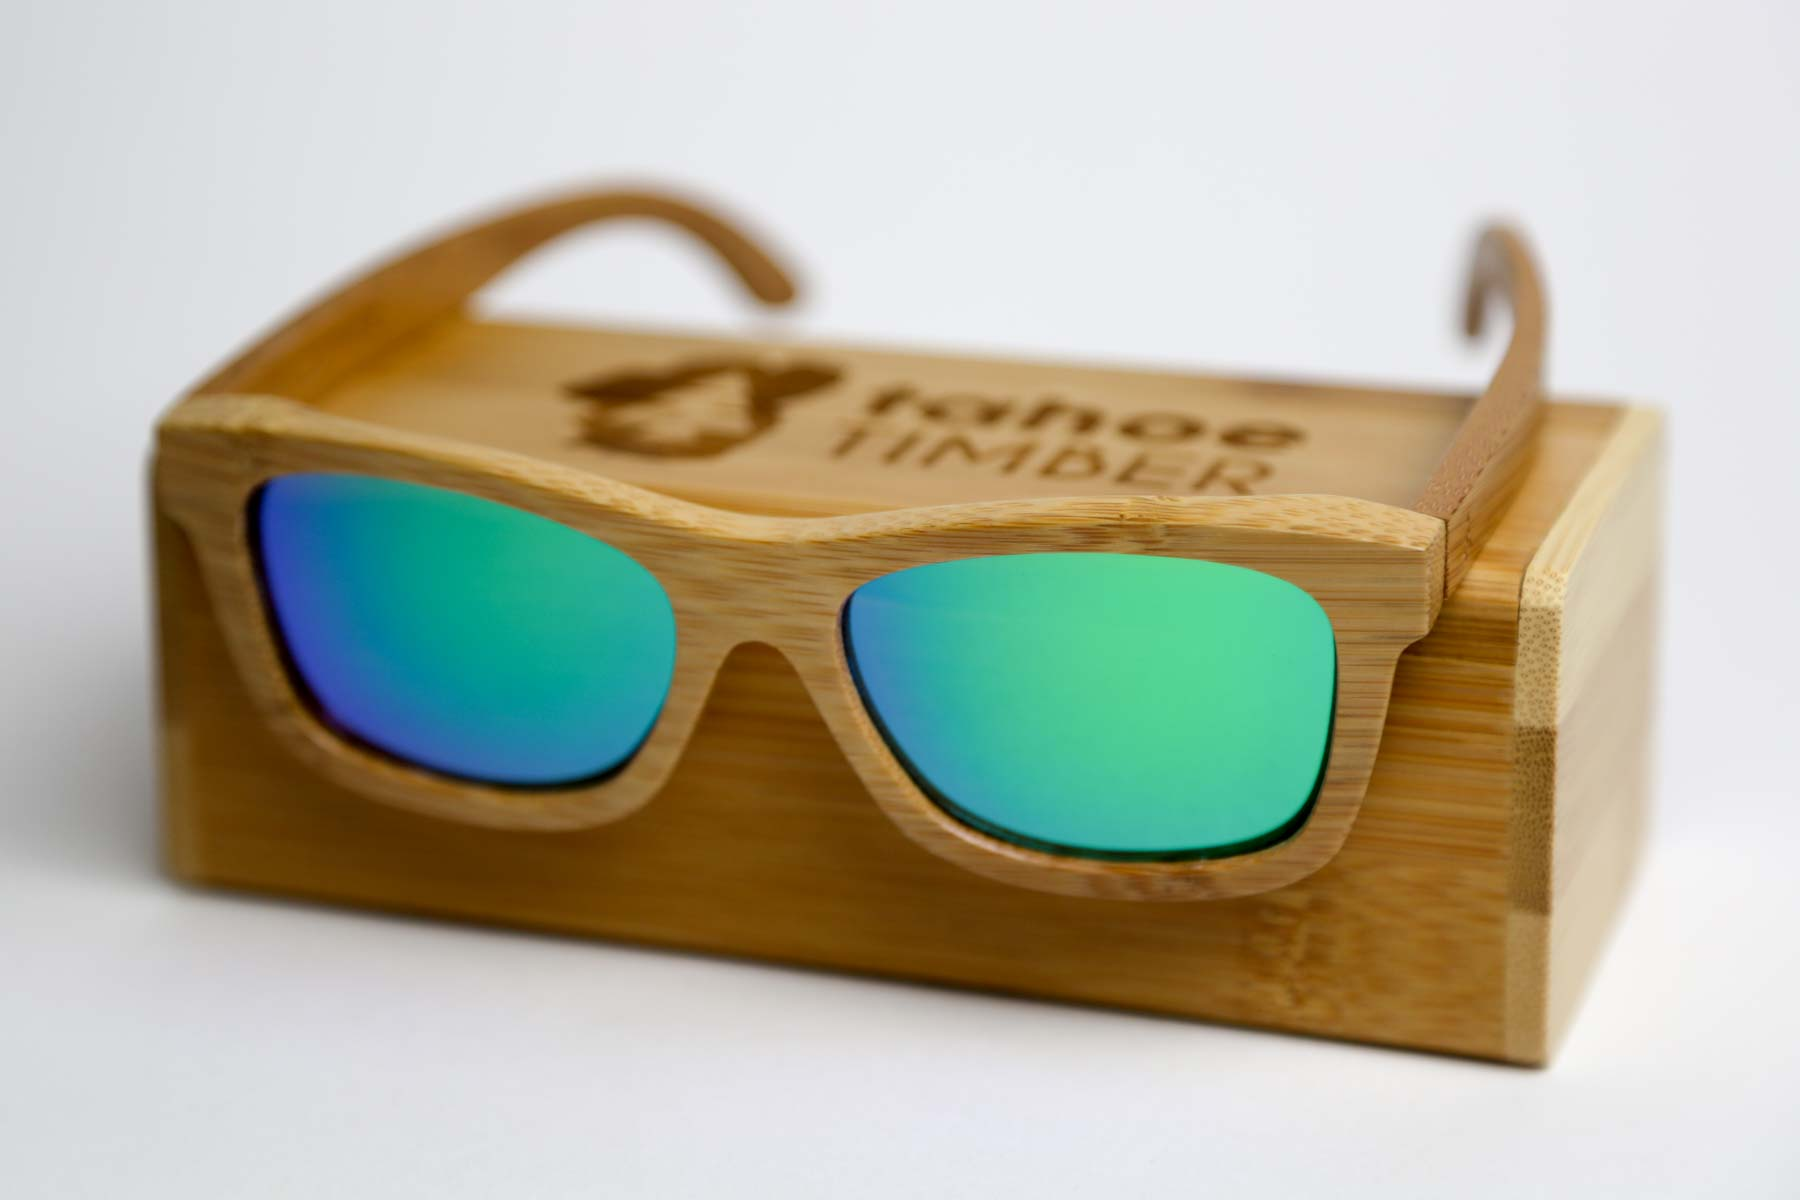 Sunglasses That Float  tahoe timber wooden sunglasses custom gifts